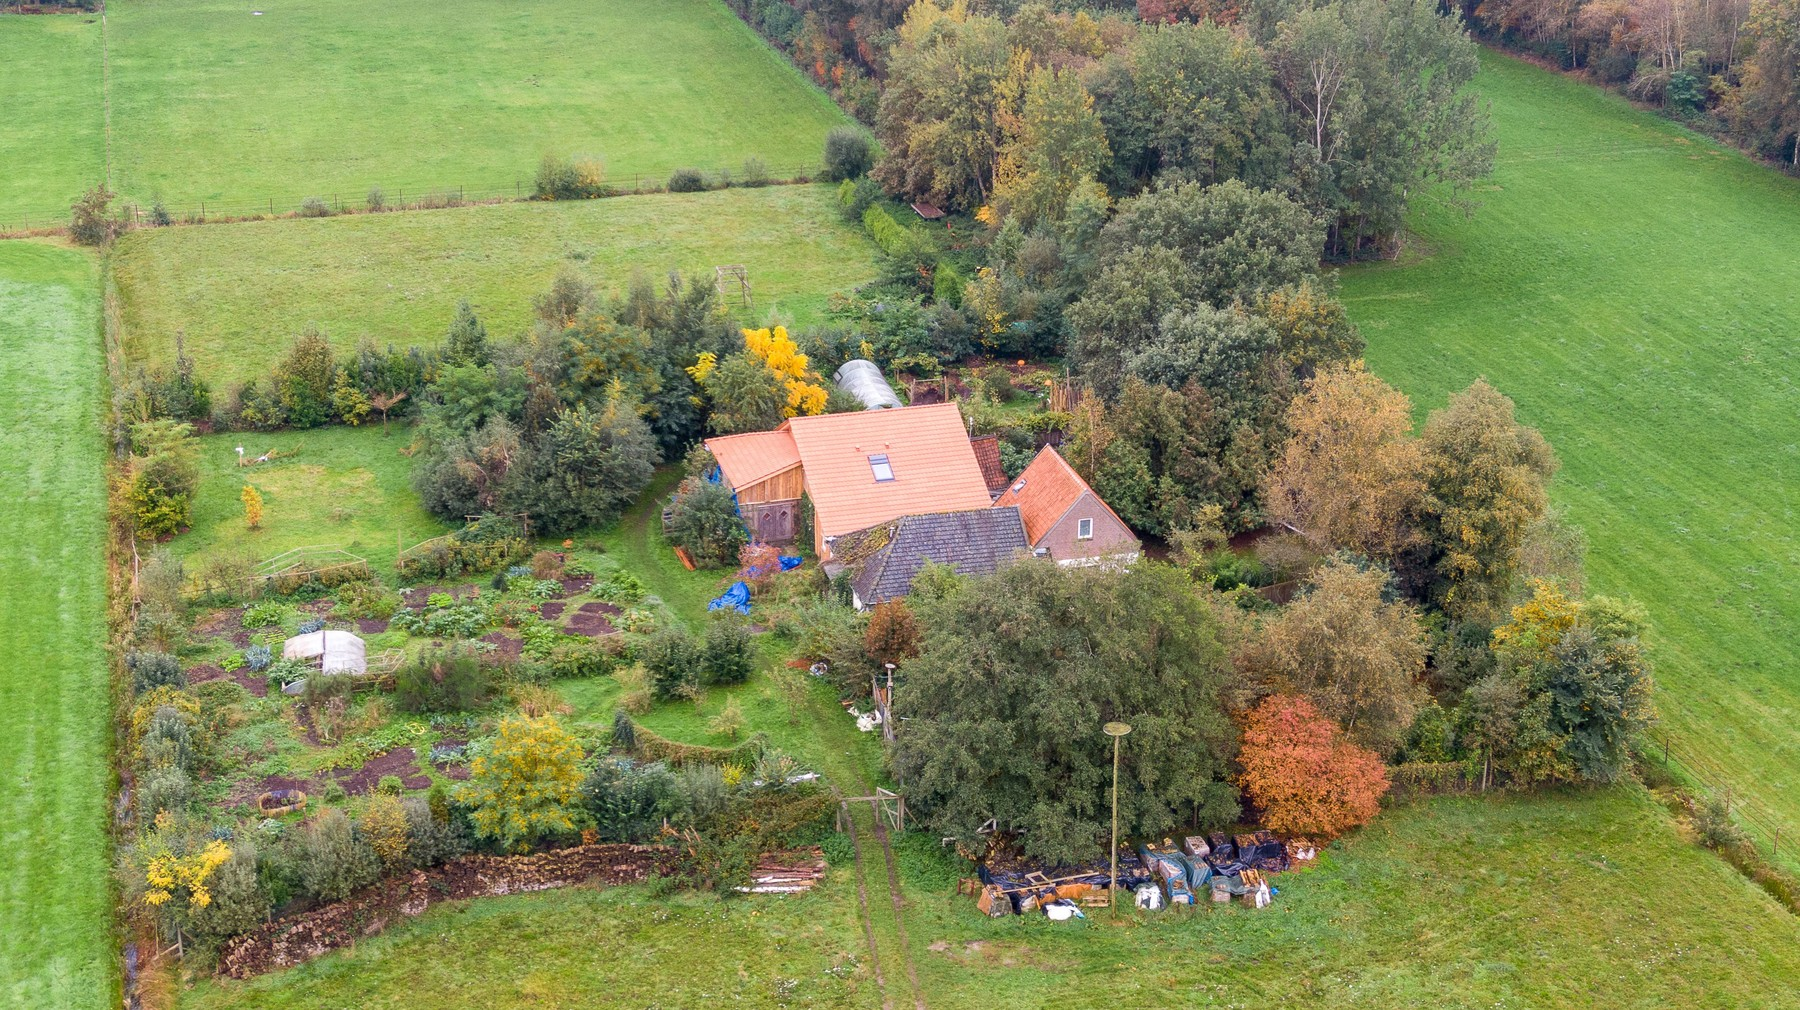 2019-10-15 11:40:19 A drone photo of the farm, where a father and six children had been living in the cellar, In Ruinerwold, The Netherlands, 15 October 2019. The family lived in the cellar for years and where waiting for 'the end of time'. ANP WILBERT BIJZITTER, Image: 477153400, License: Rights-managed, Restrictions: , Model Release: no, Credit line: Wilbert Bijzitter / AFP / Profimedia